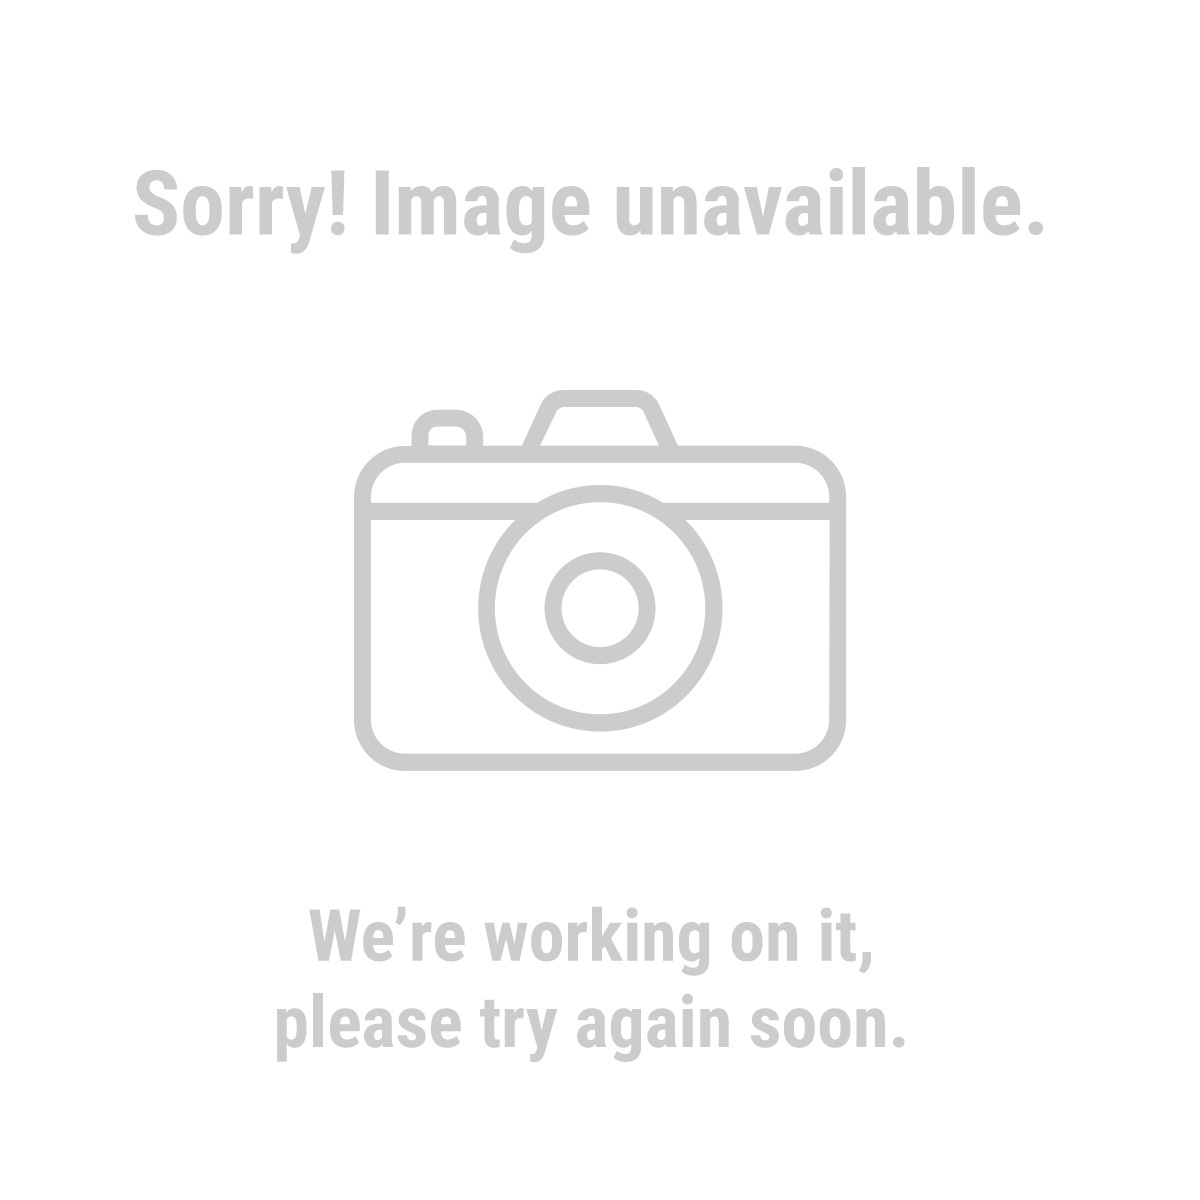 Worm Drive Skill Saw Harbor Freight